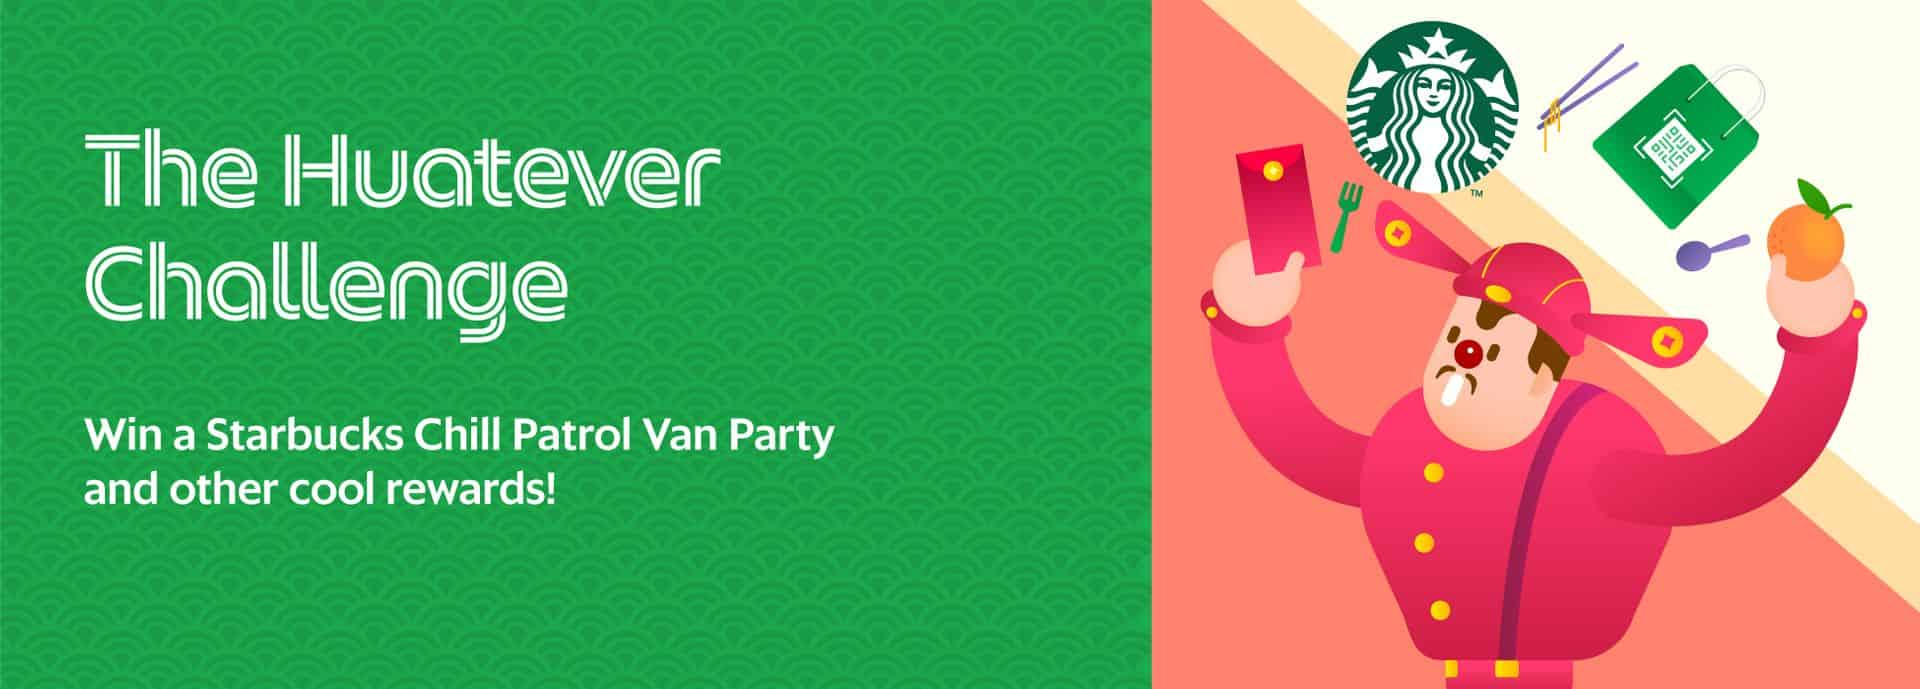 The Huatever Challenge - Win a starbucks chill patrol van party and other cool rewards!